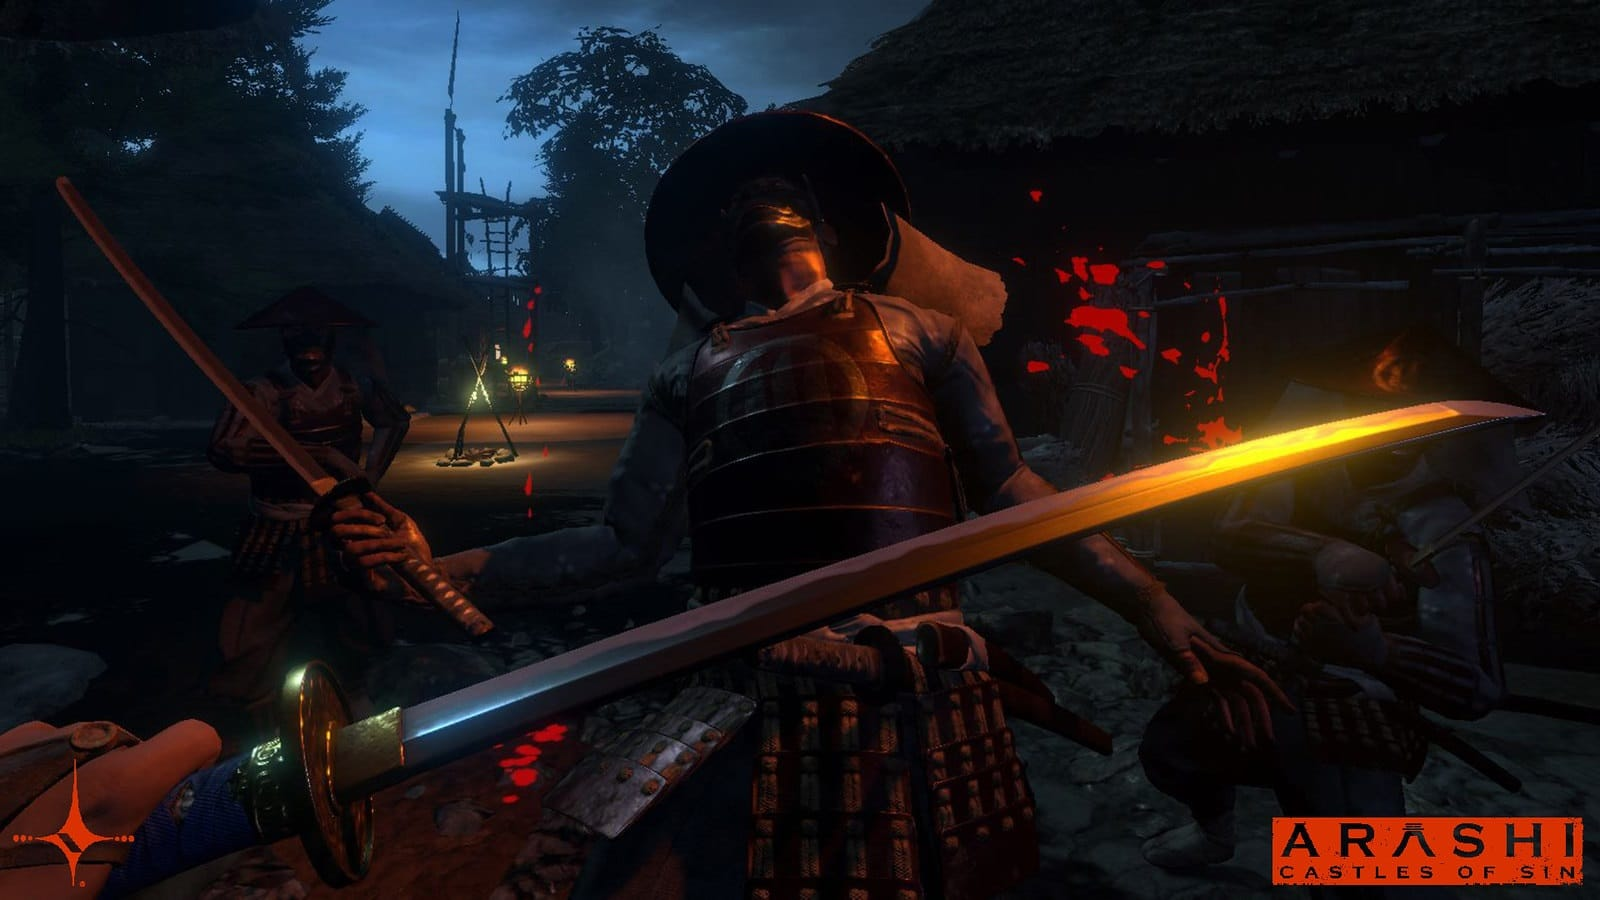 Arashi: Castles of Sin Is A Tenchu-Like Stealth Game For PSVR